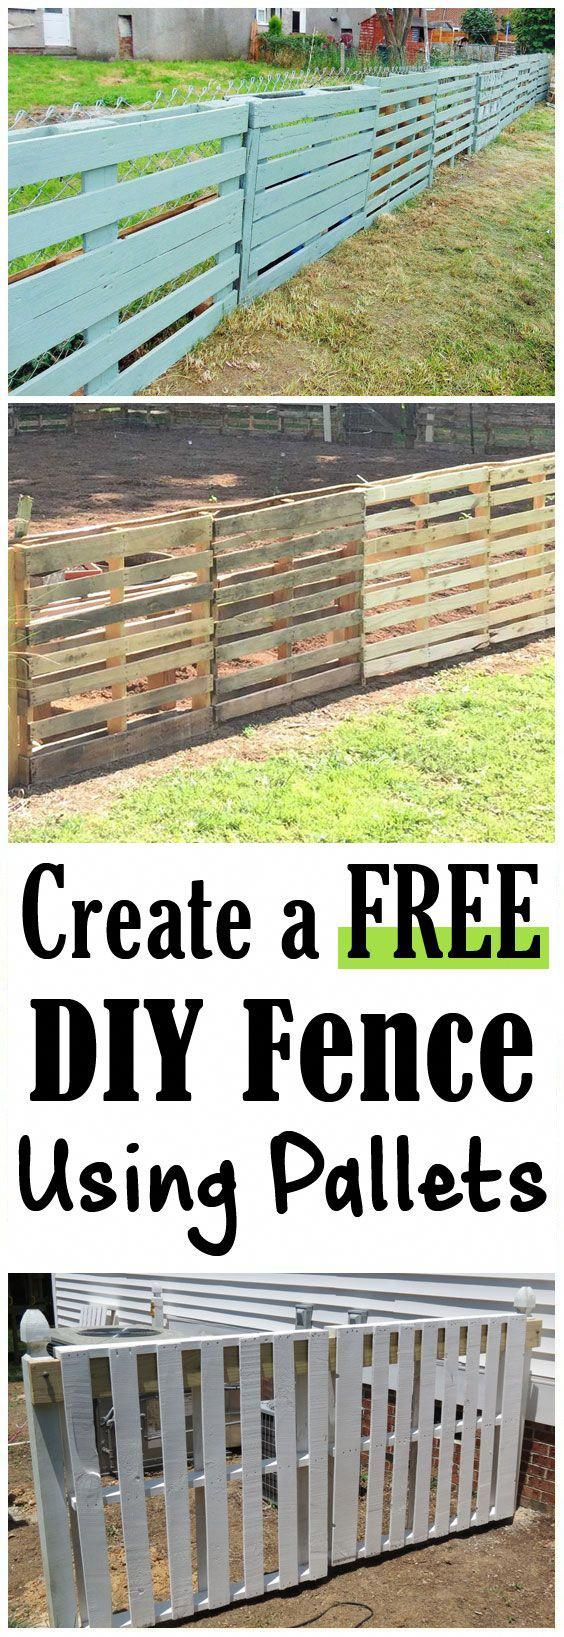 Building a fence normally costs a pretty penny and also takes